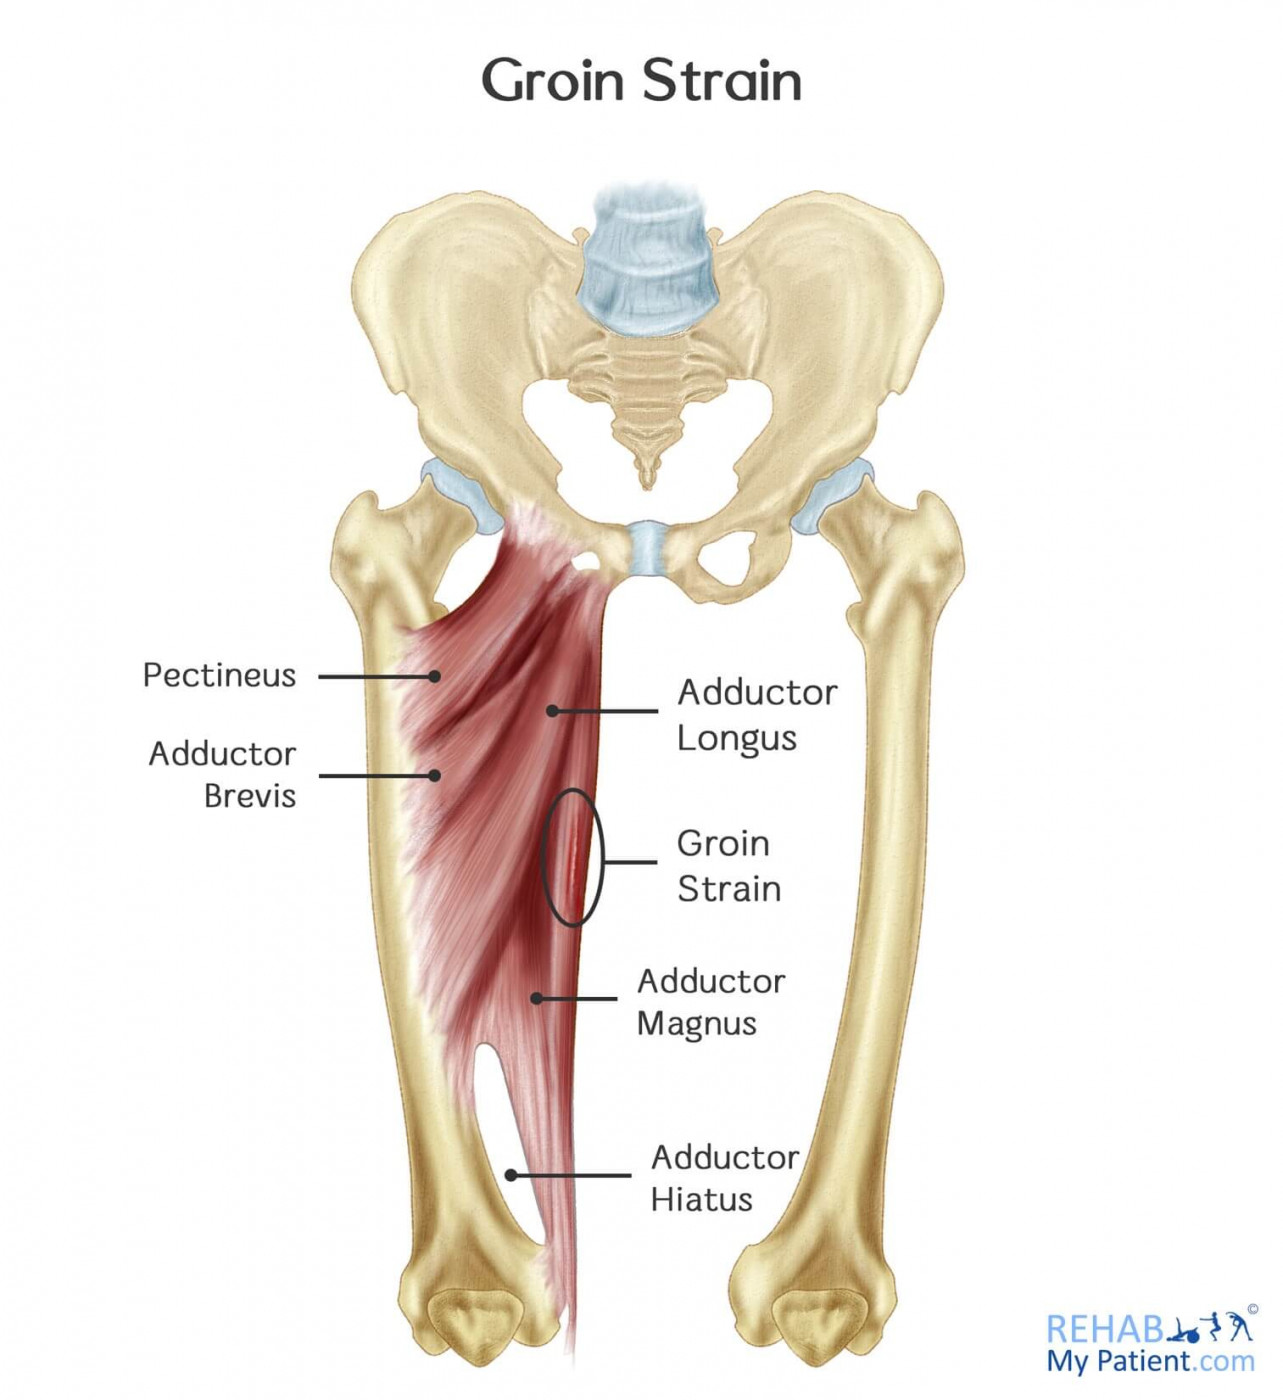 Diagram of muscles affected in groin strain